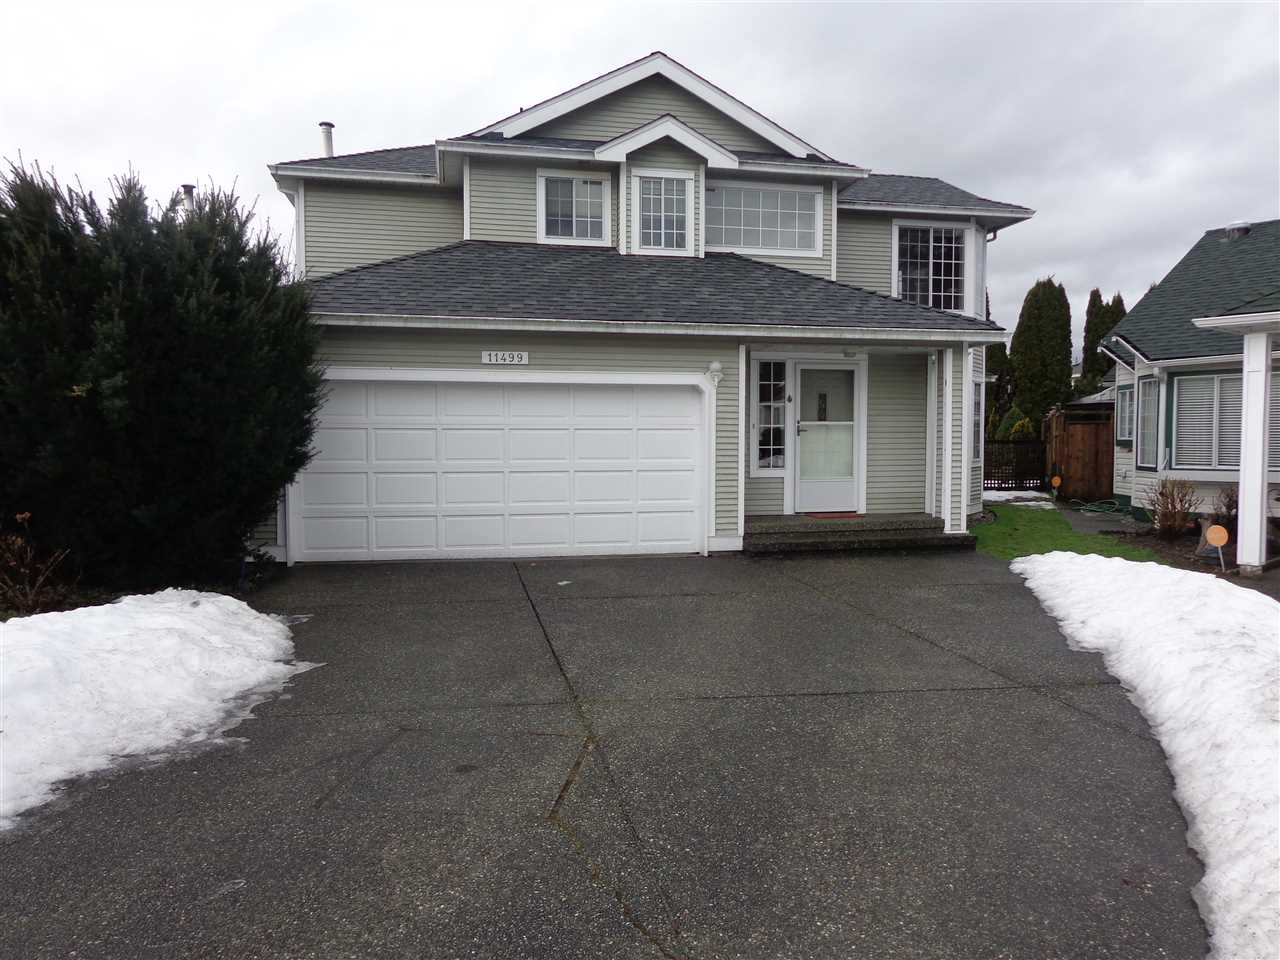 Main Photo: 11499 207A Street in Maple Ridge: Southwest Maple Ridge House for sale : MLS®# R2132621